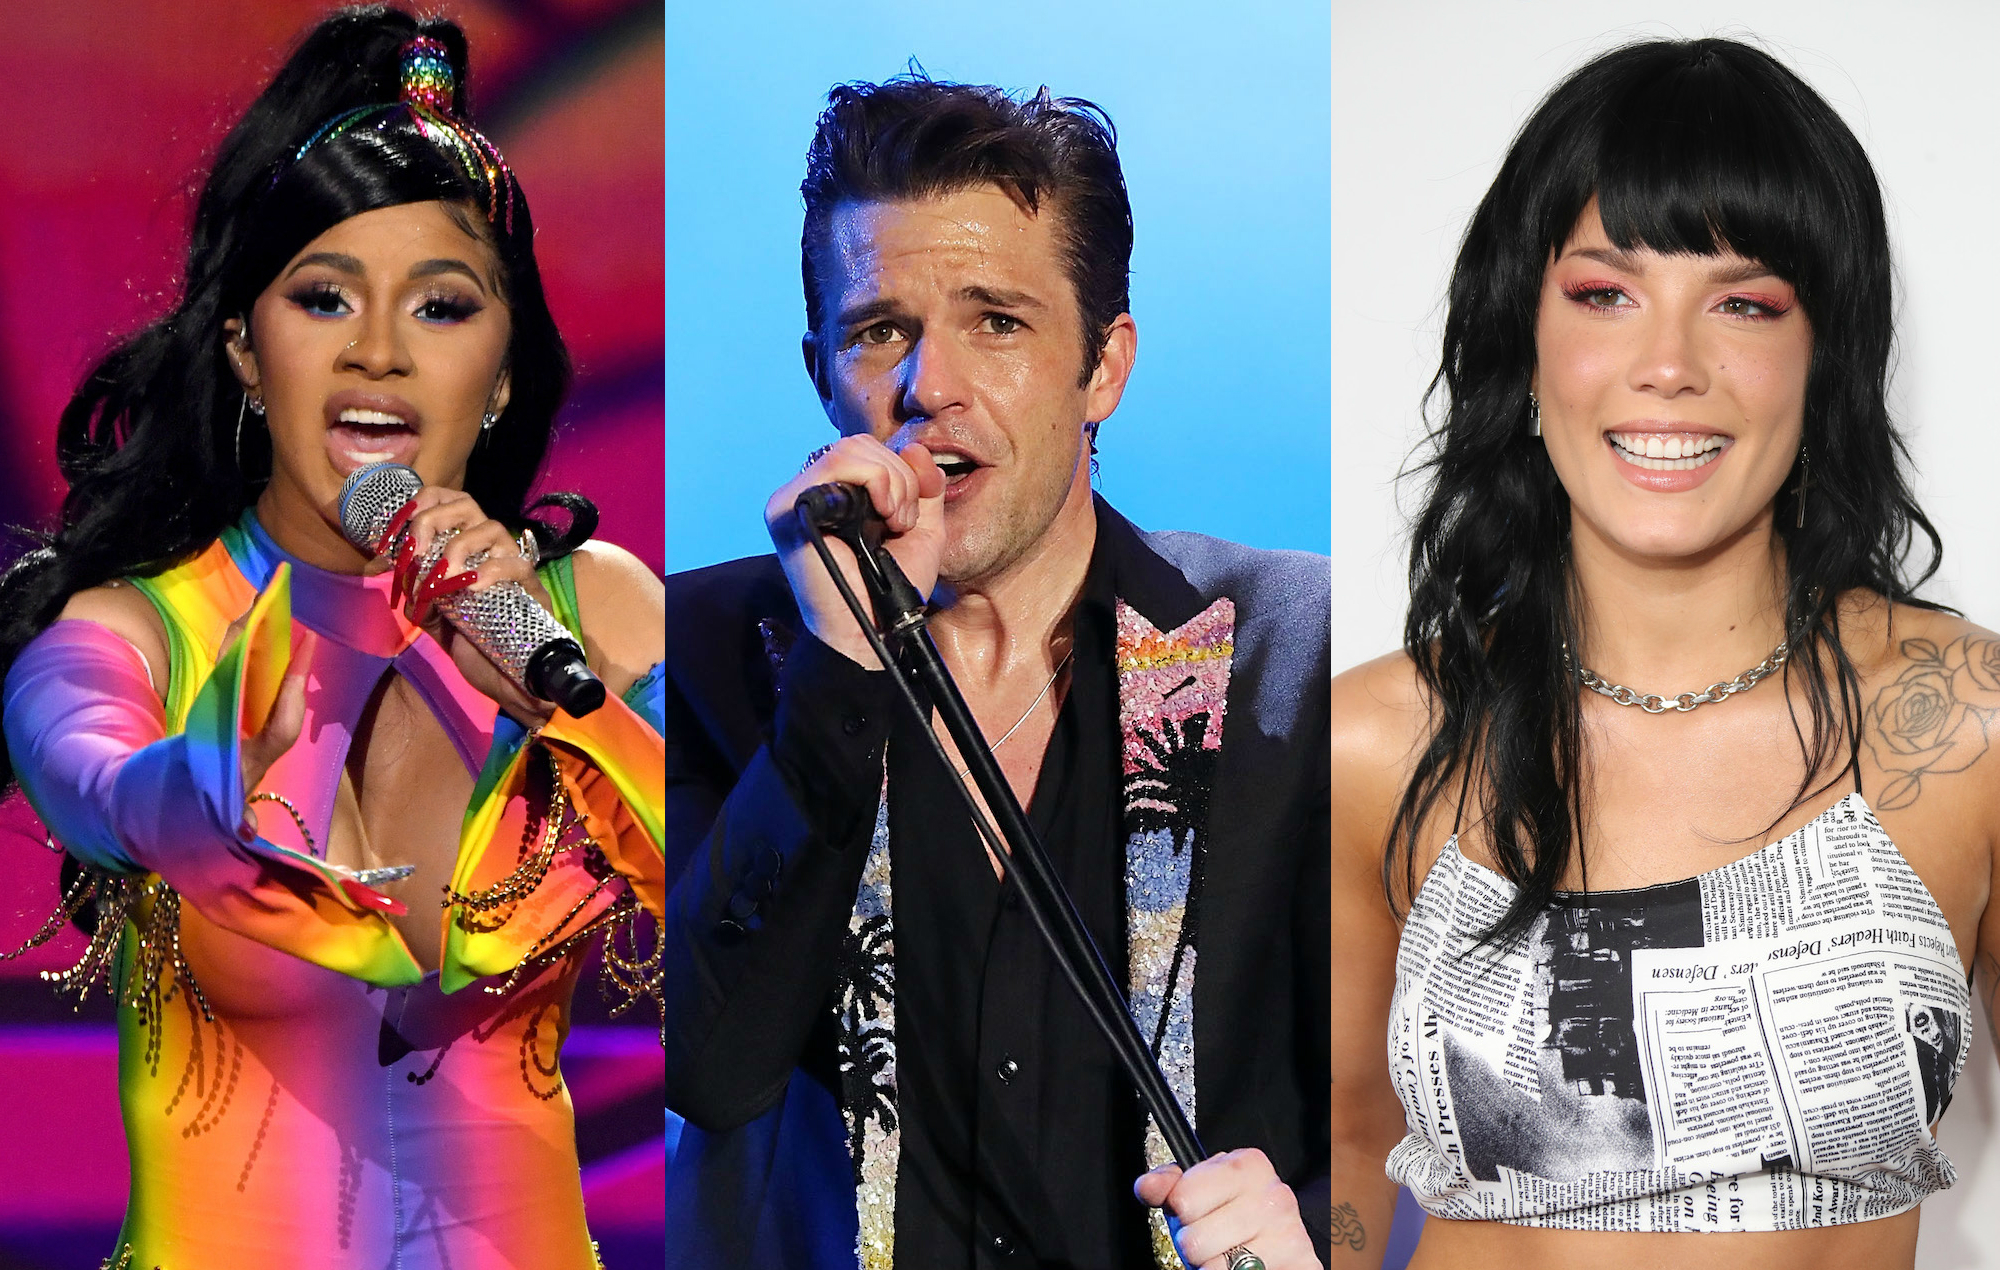 Best Albums Of 2020 So Far.Cardi B The Killers And Halsey All The Best New Albums Of 2020